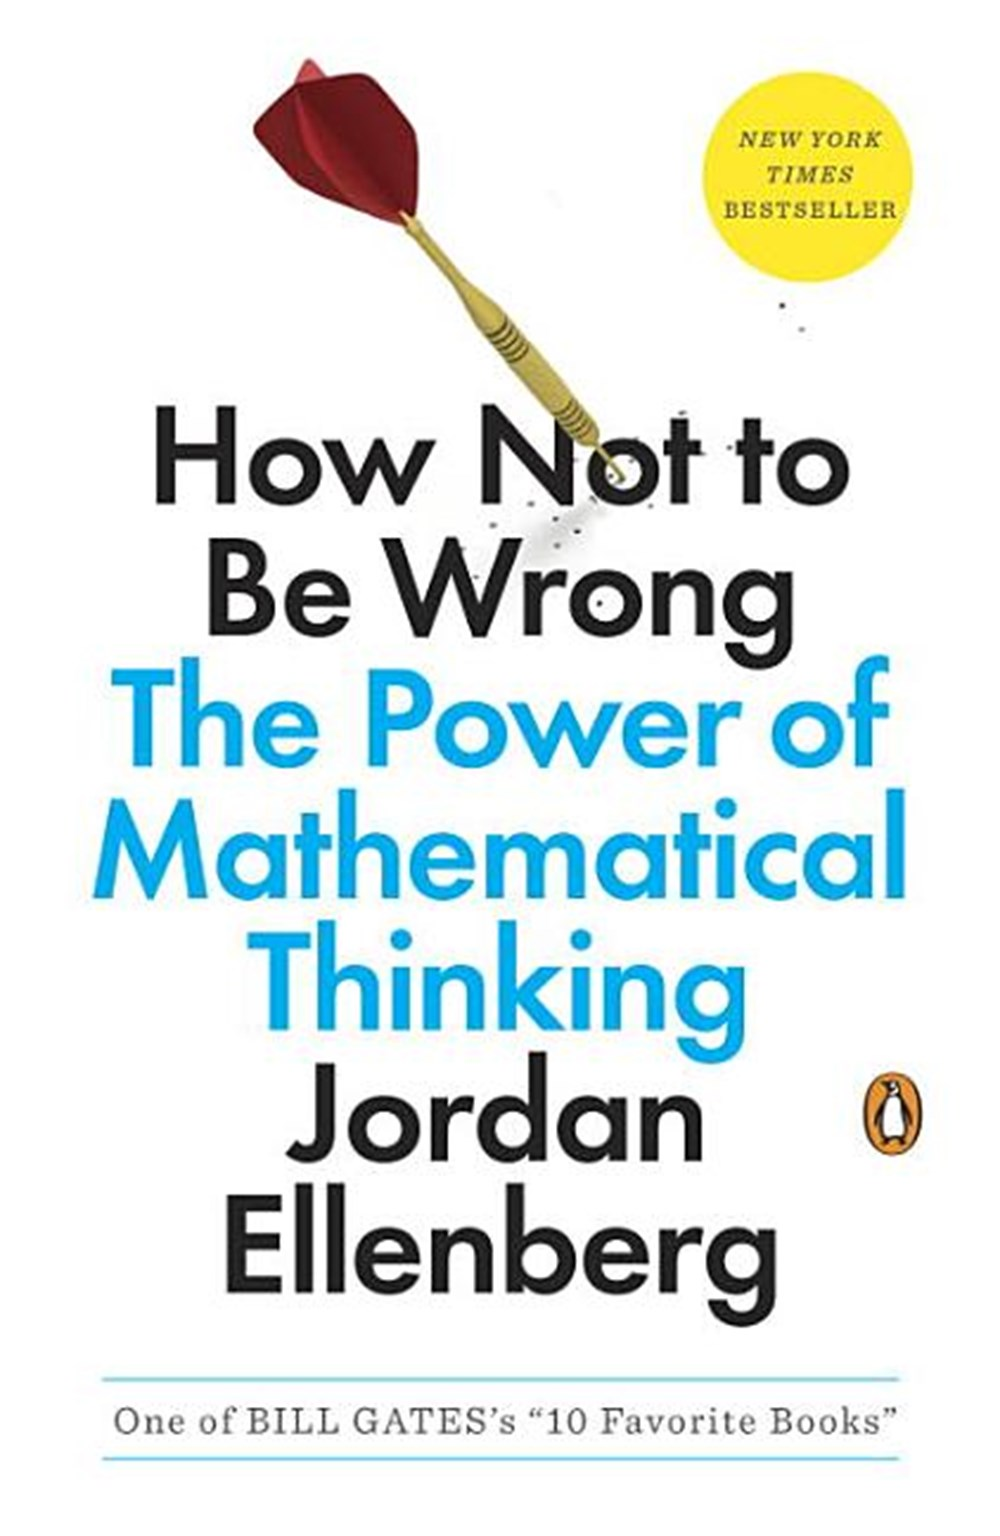 How Not to Be Wrong The Power of Mathematical Thinking